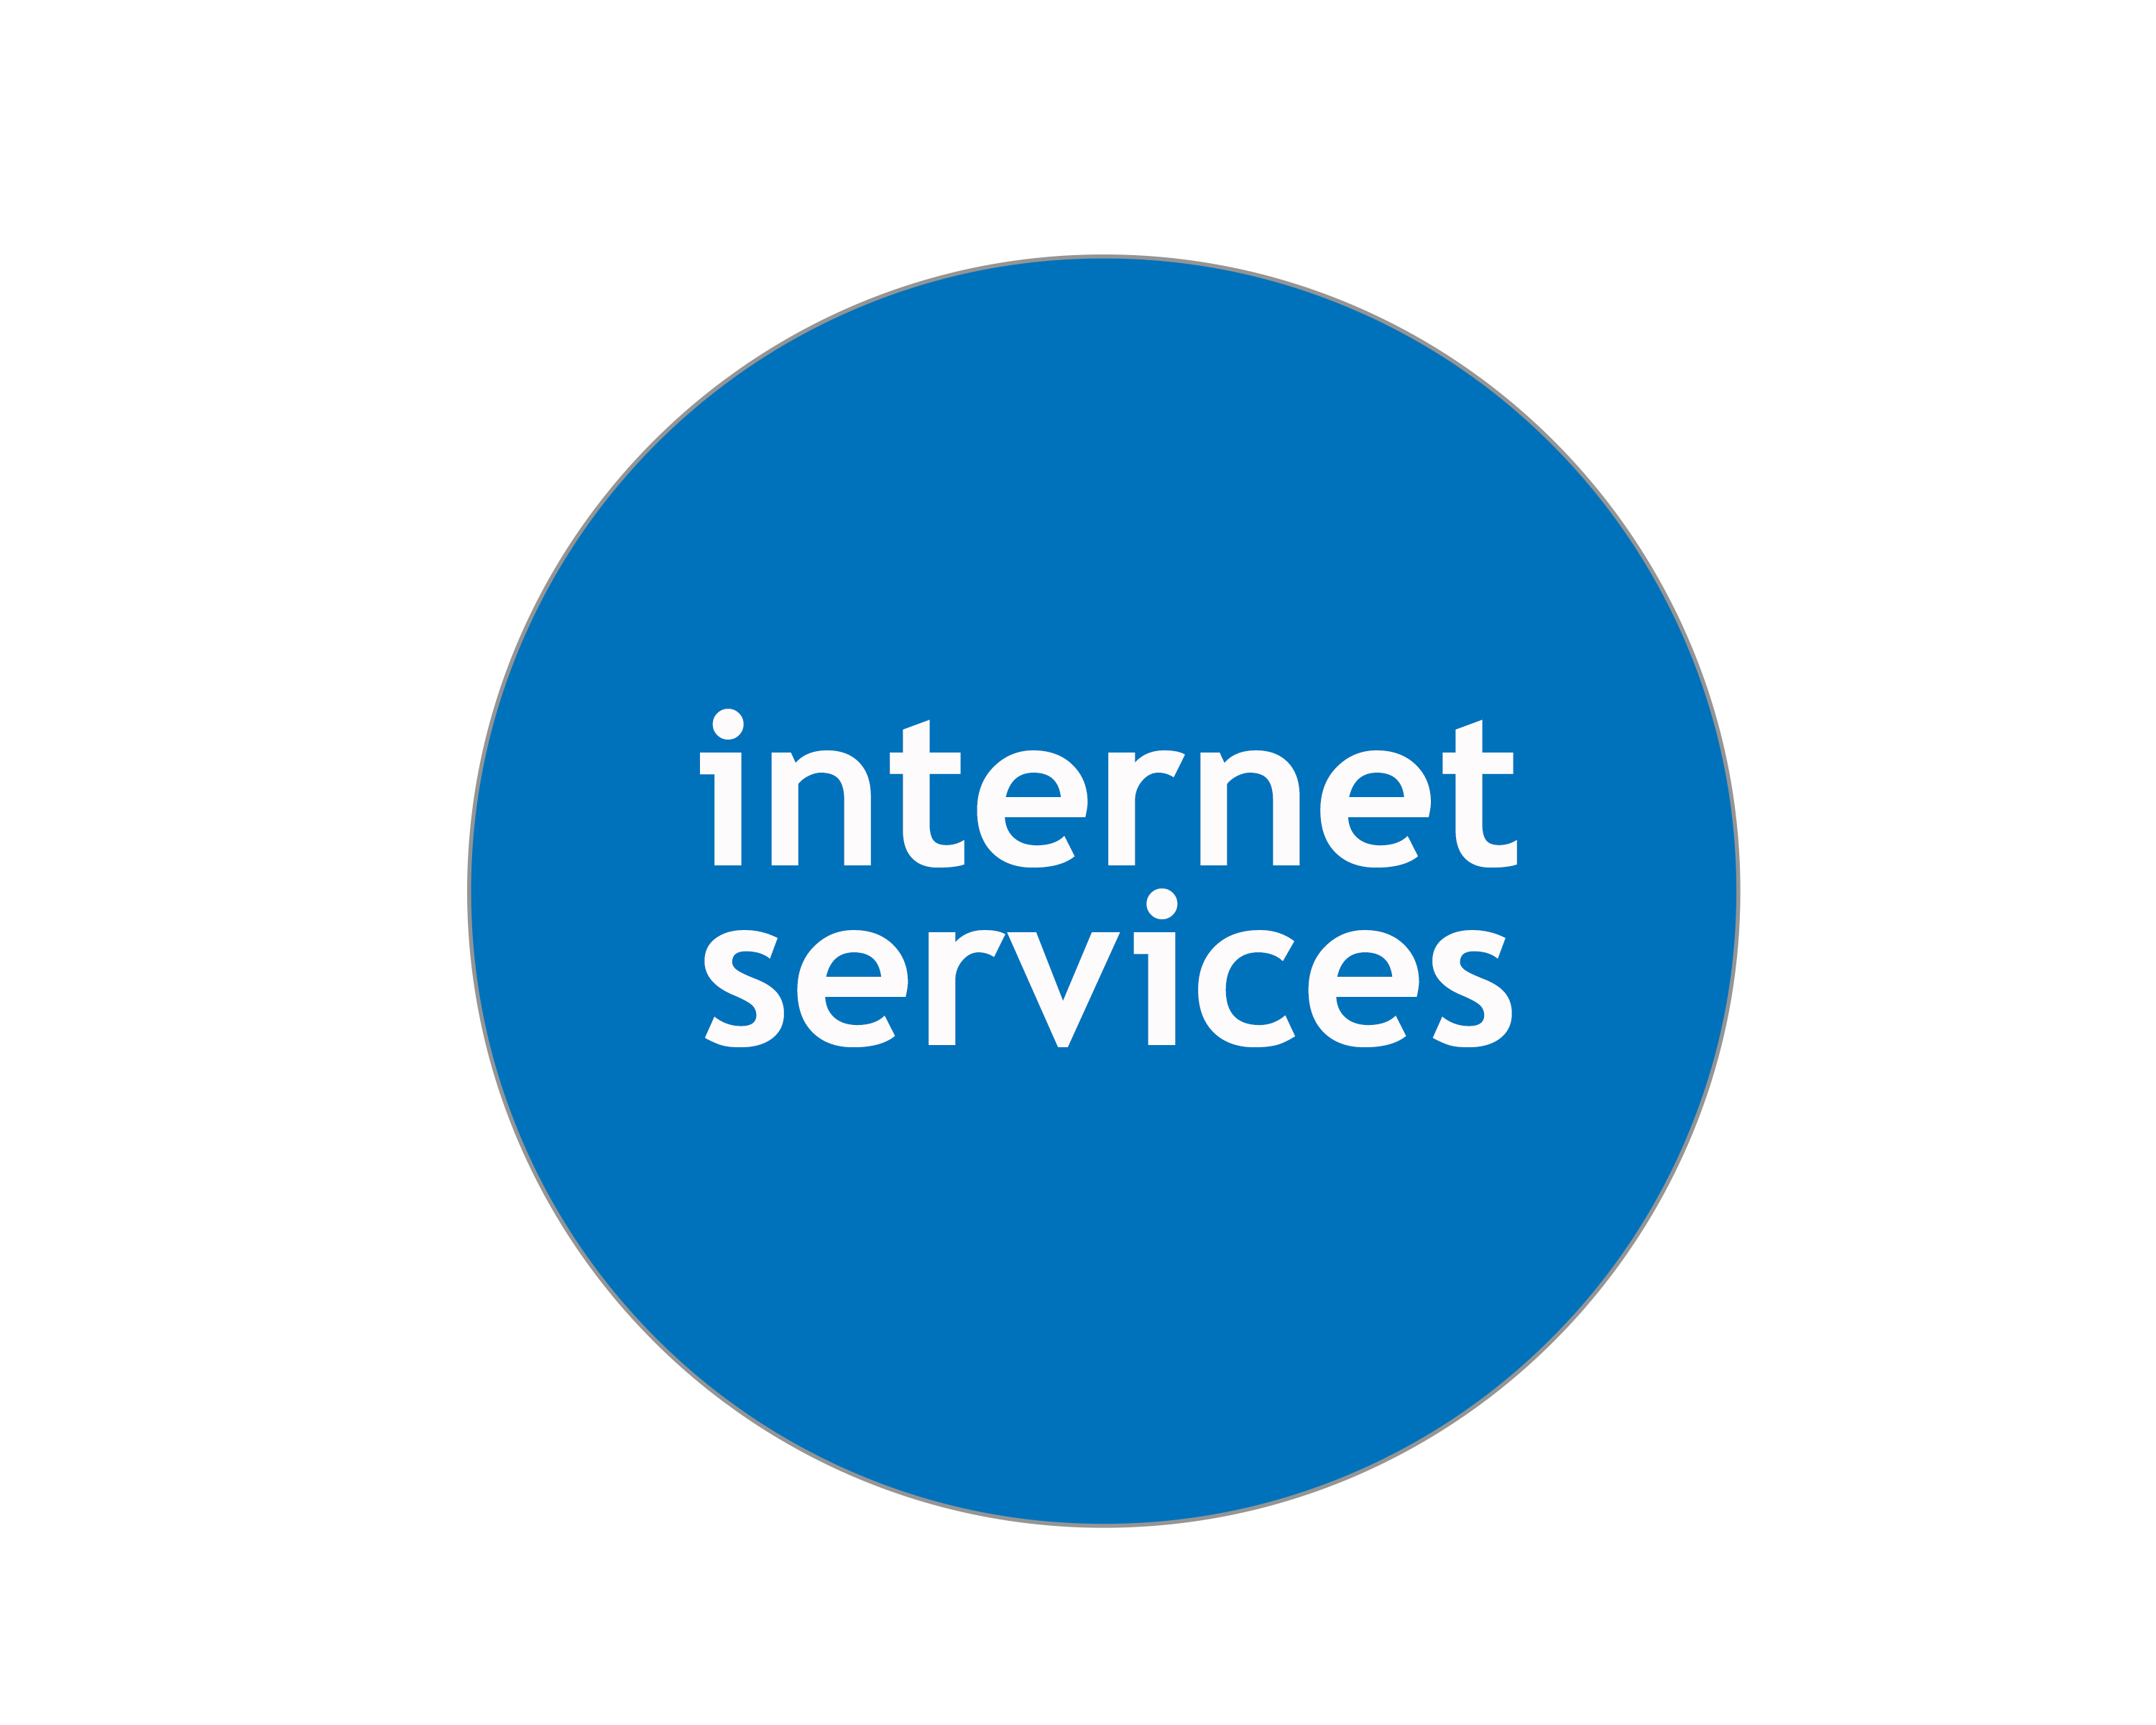 internet services